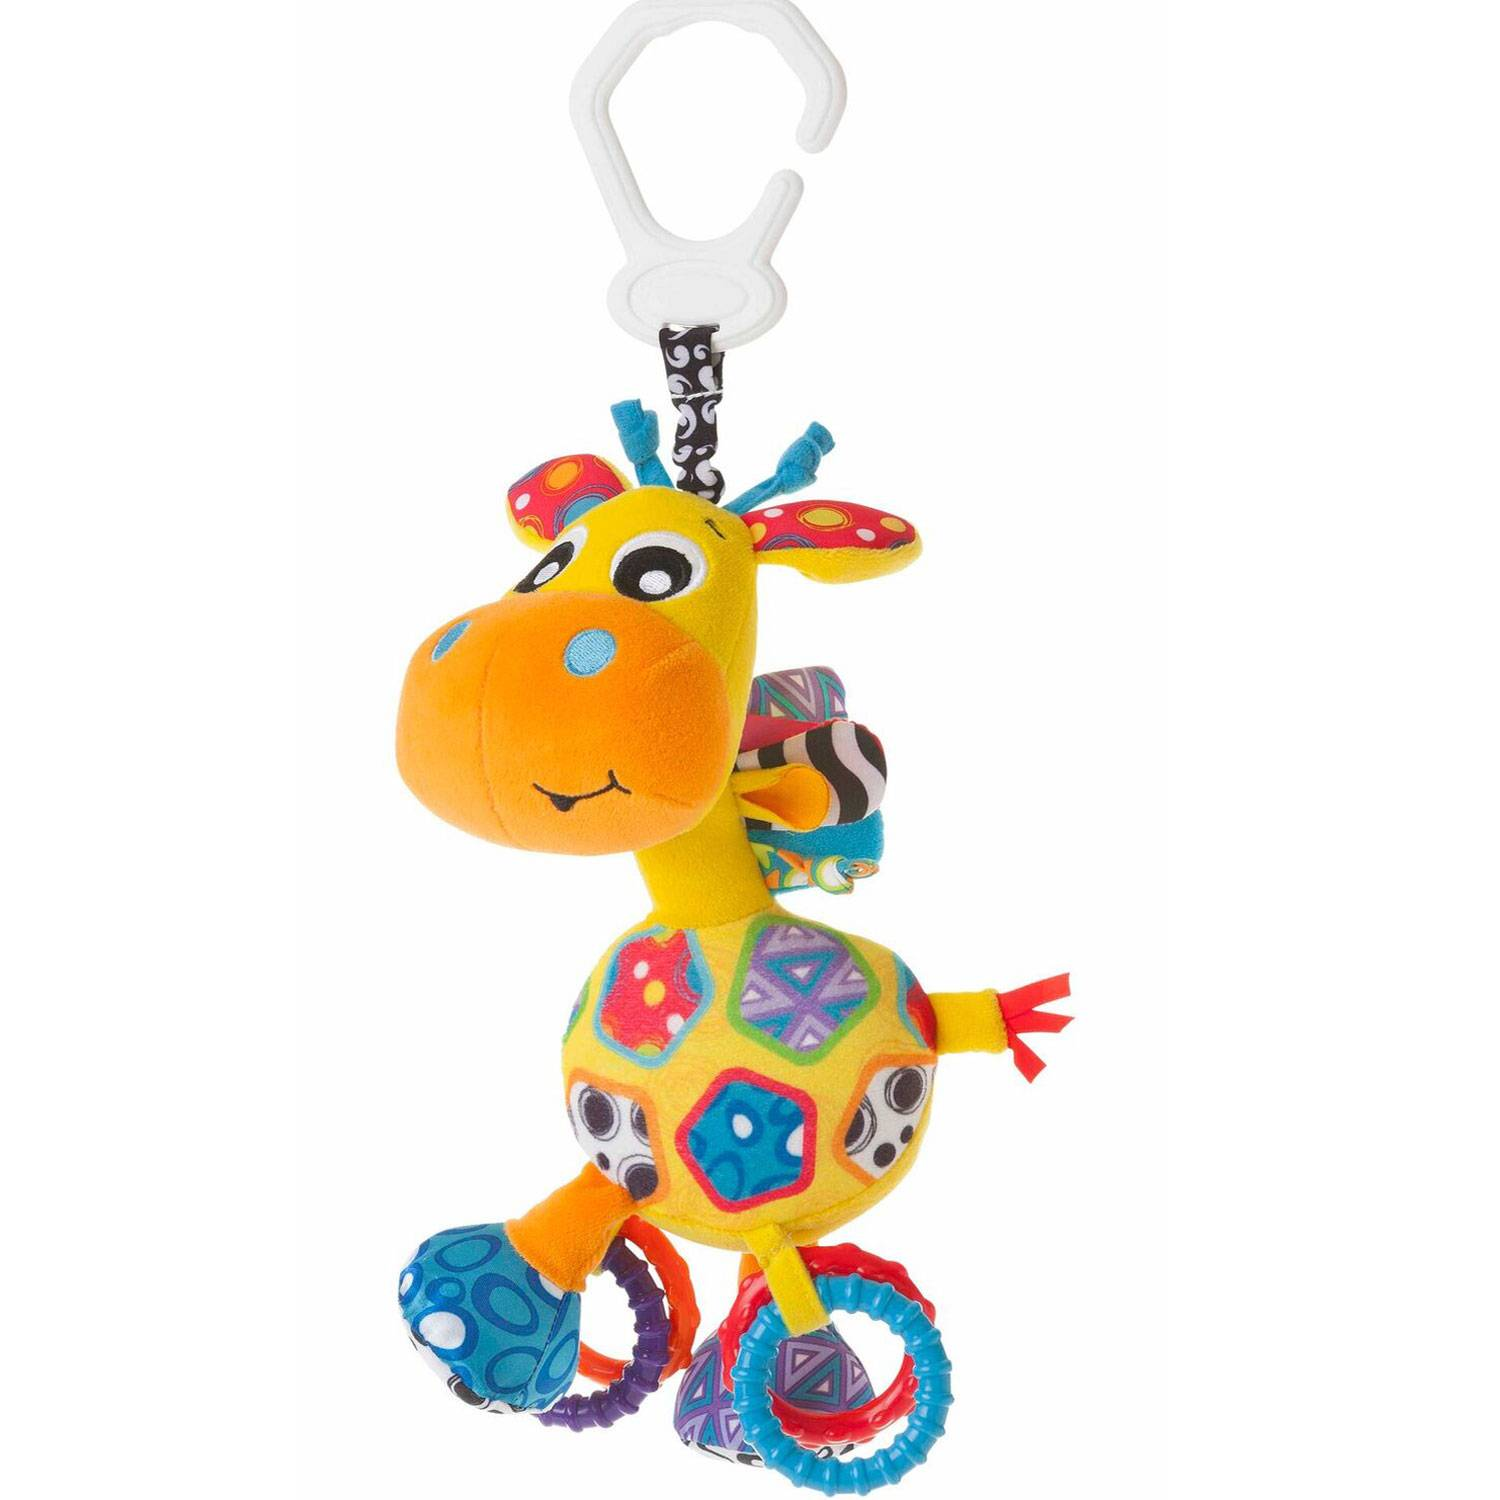 Playgro Jerry Giraffe Rattle (186359)